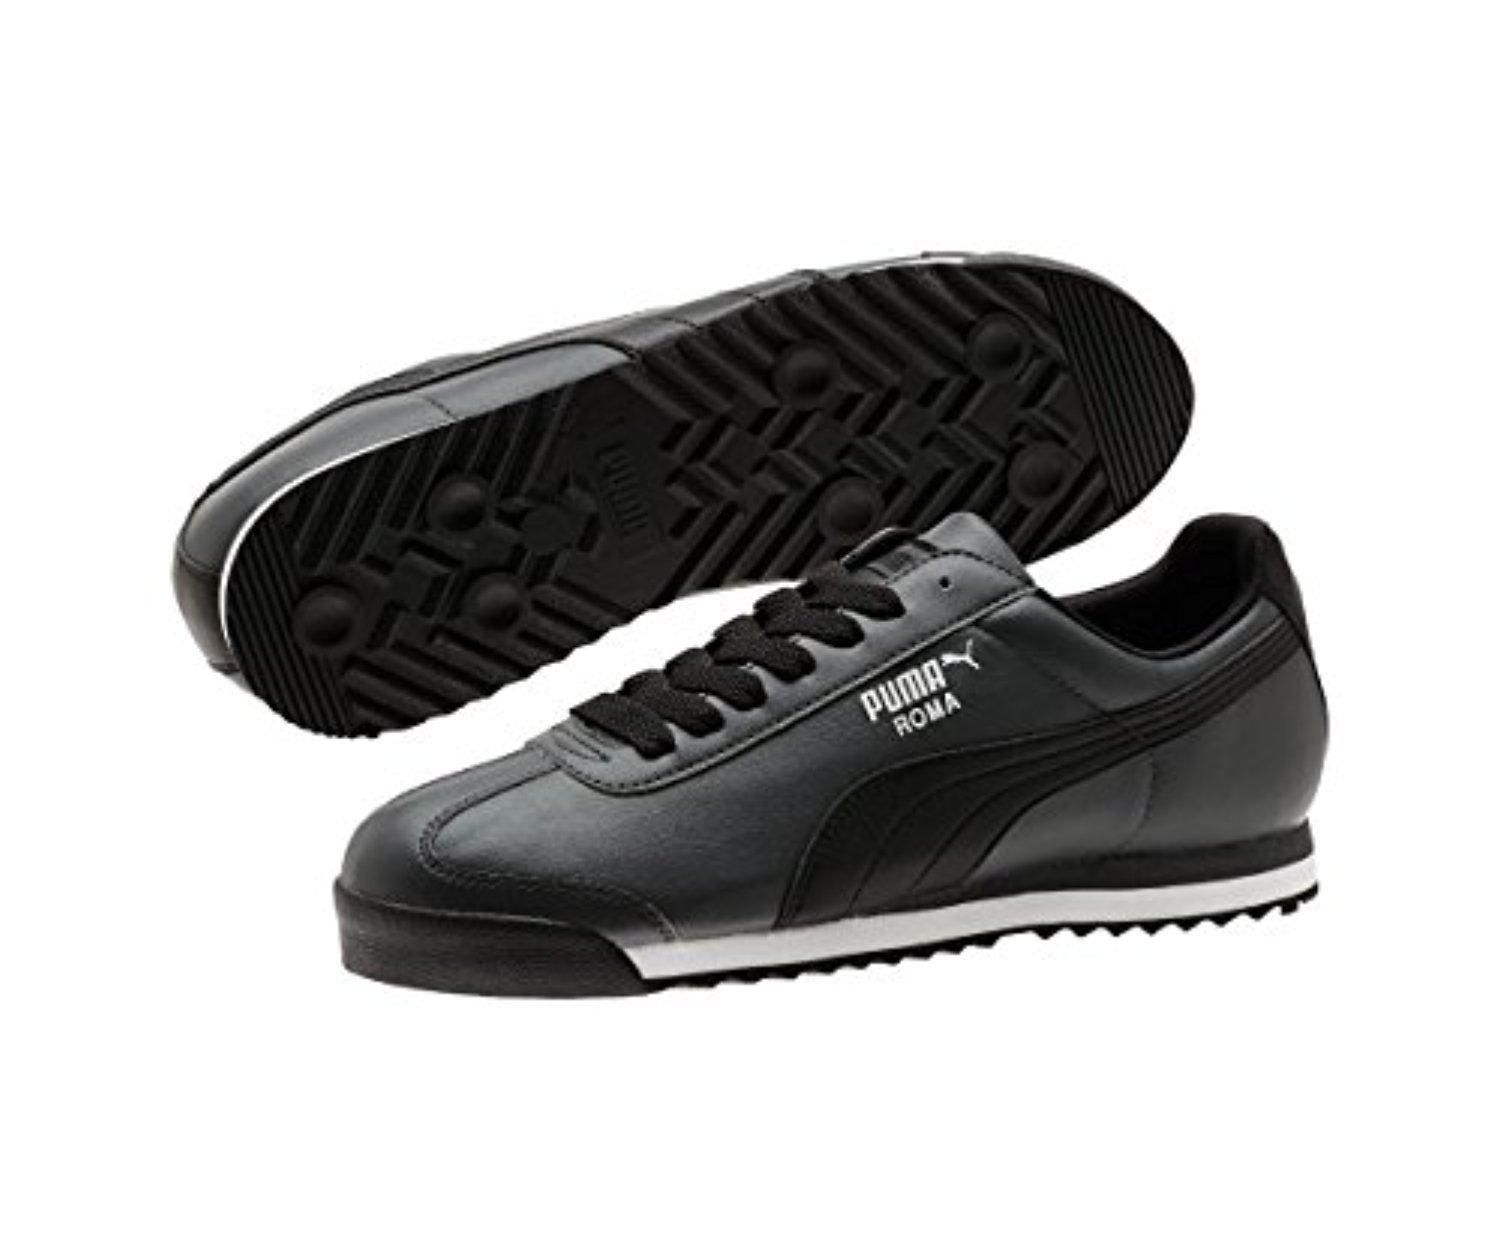 b1c8219c406 PUMA Men s Roma Basic Dark Shadow Black White Sneaker 7 D (M) - Brought to  you by Avarsha.com